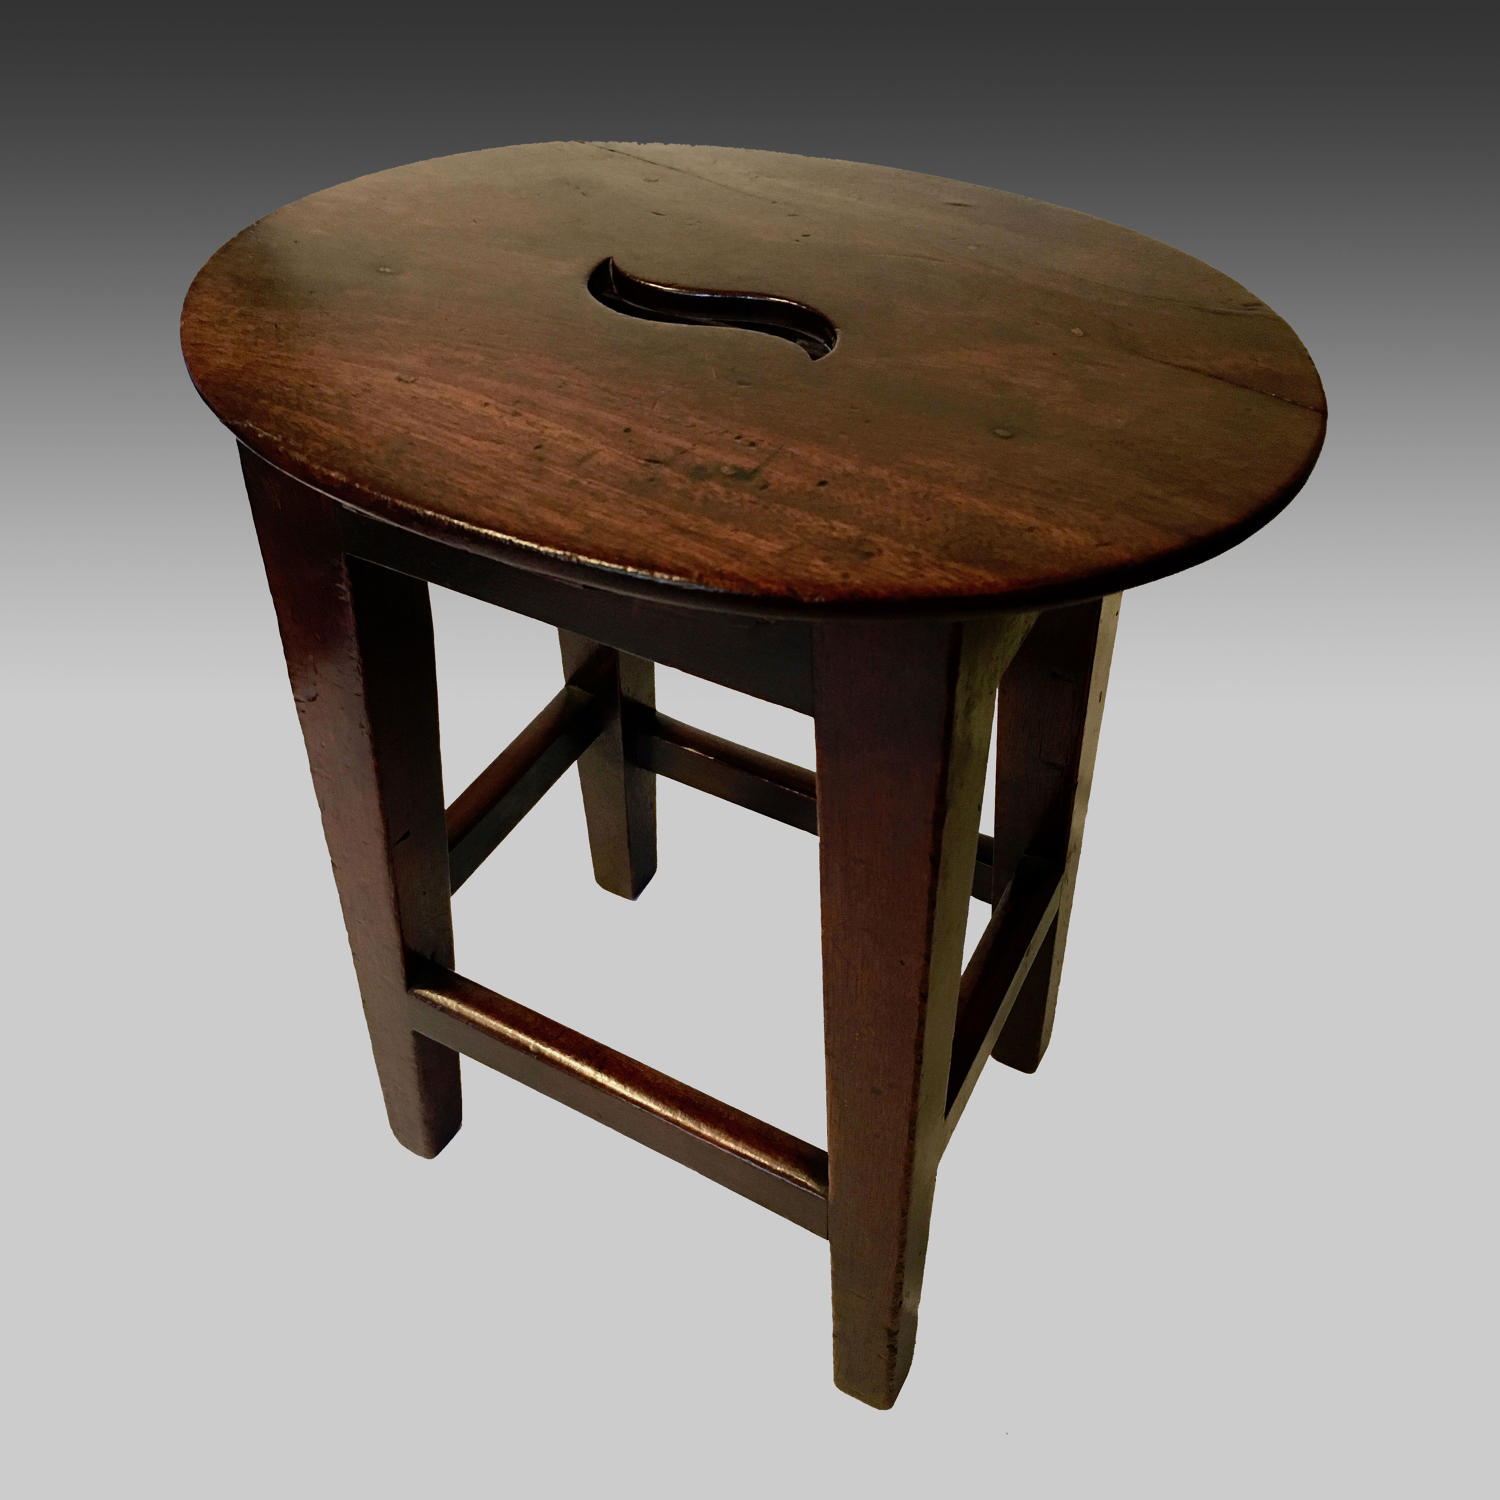 Small mid 19th century antique mahogany oval child's stool